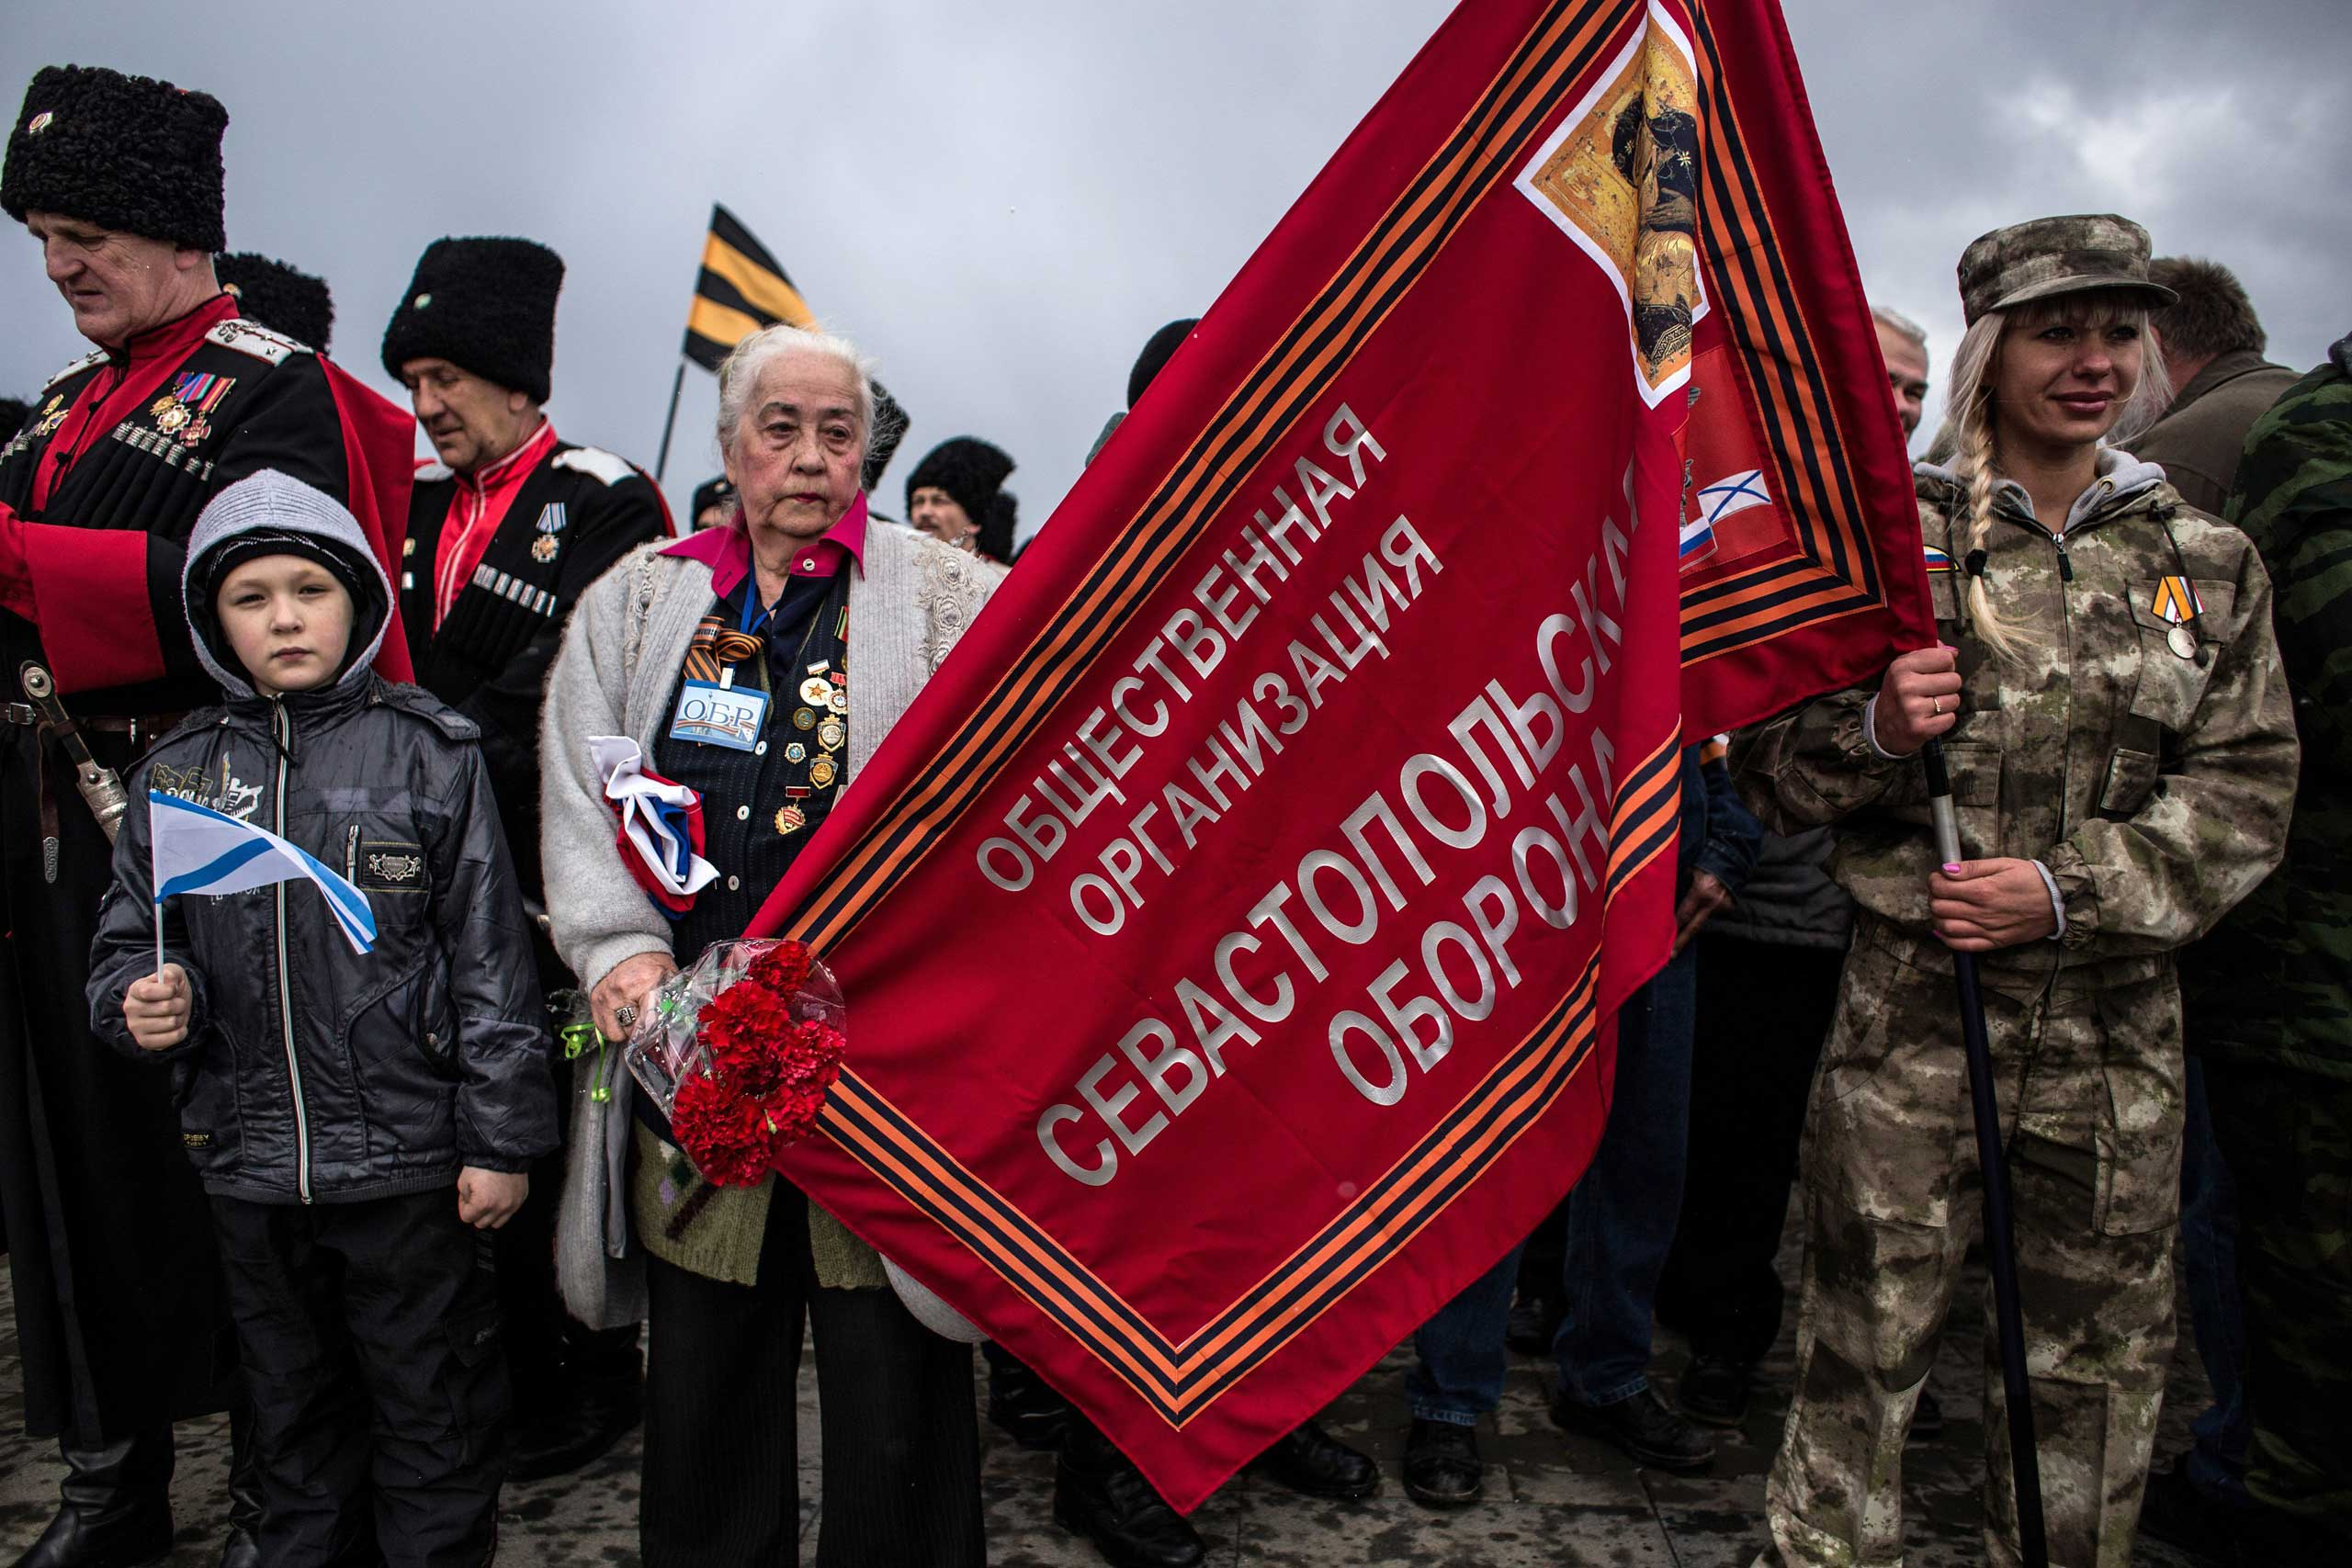 People celebrate the annexation in Sevastopol, March 18, 2015.